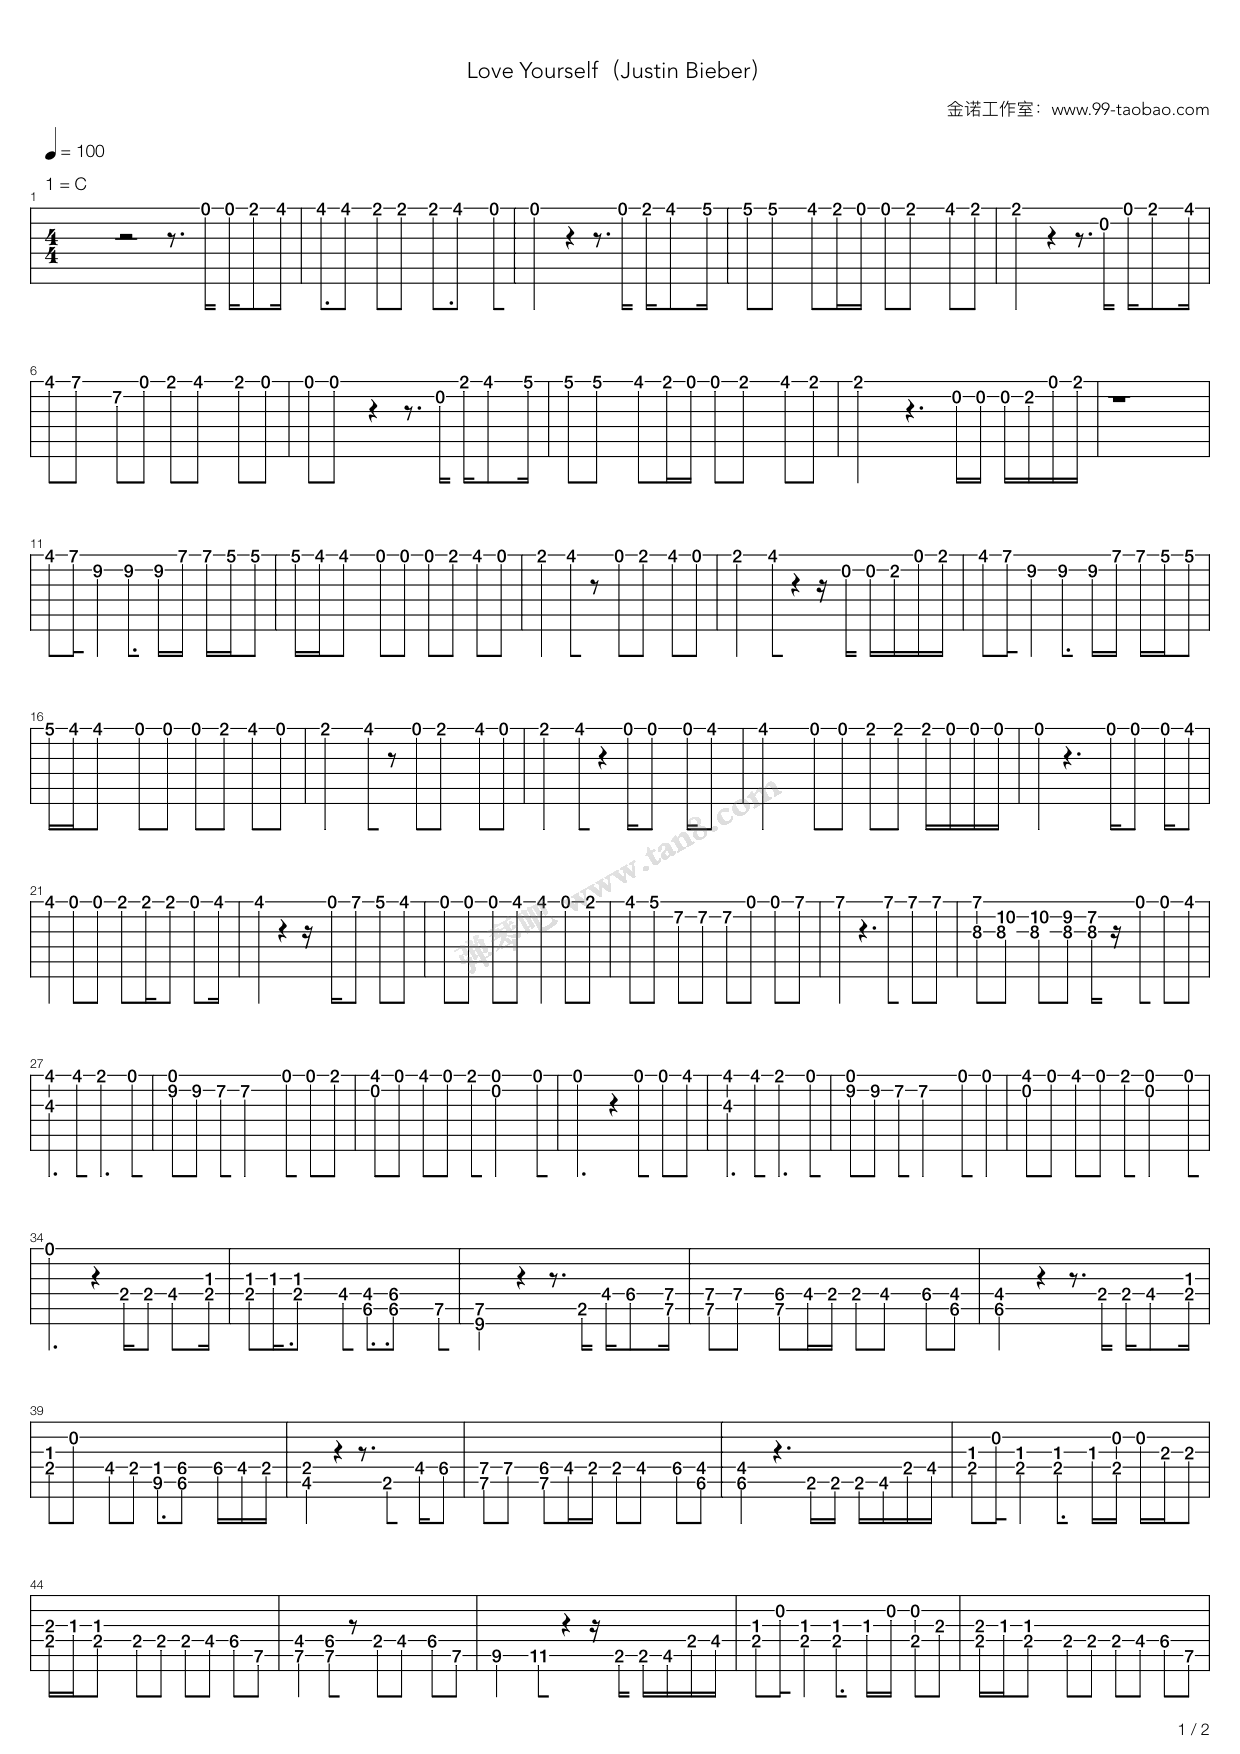 Love Yourself By Justin Bieber Easy Guitar Tabs Chords Sheet Music